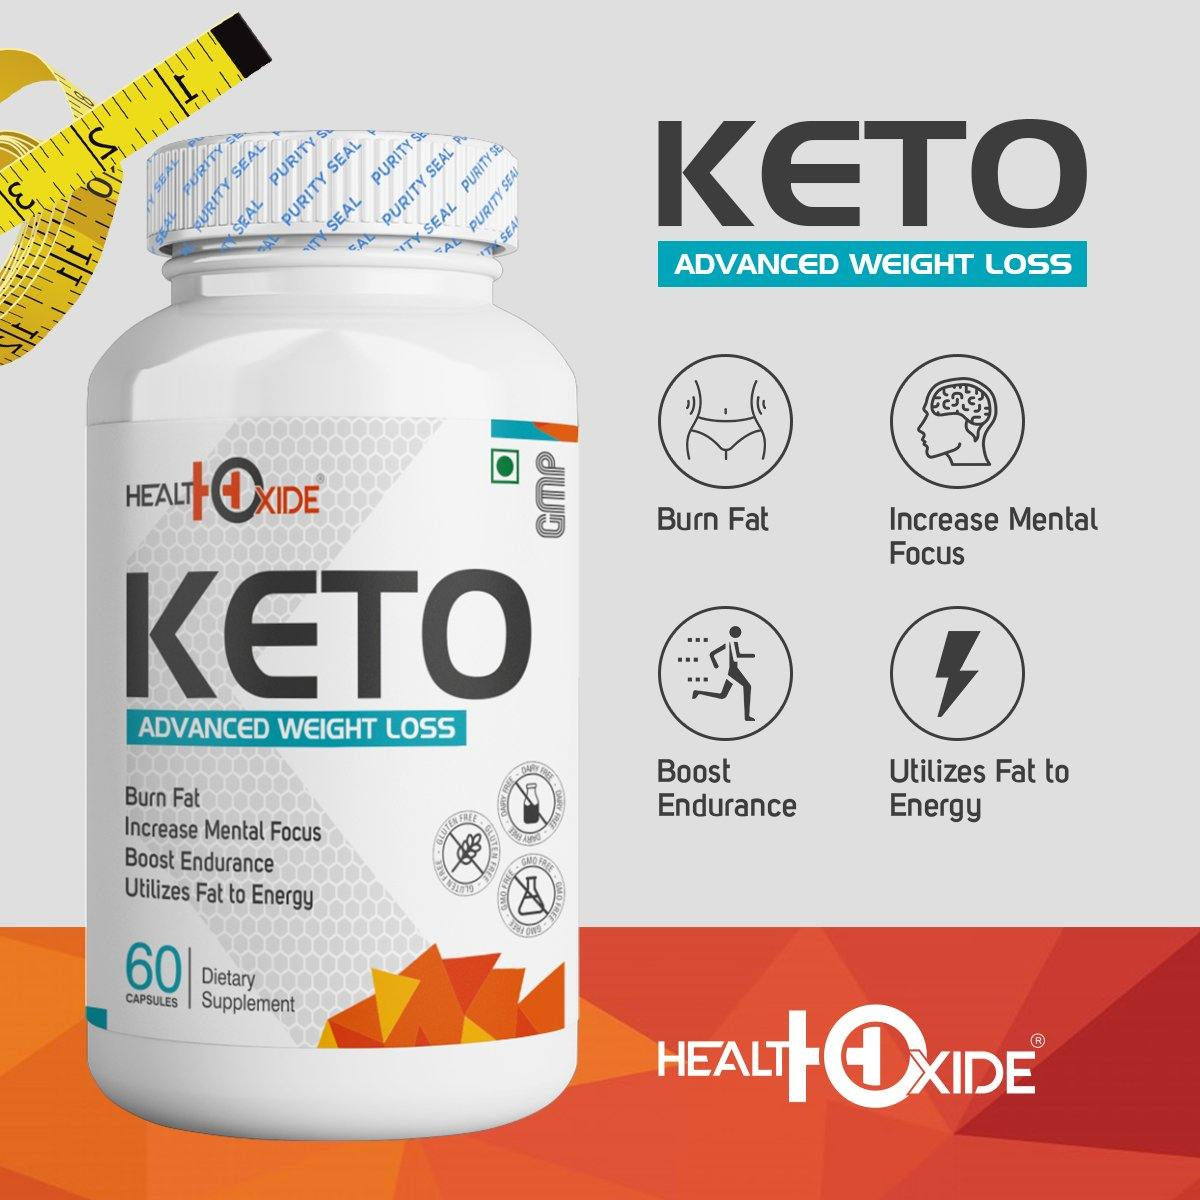 Keto Advanced Weight Loss Supplement   (60 capsules)